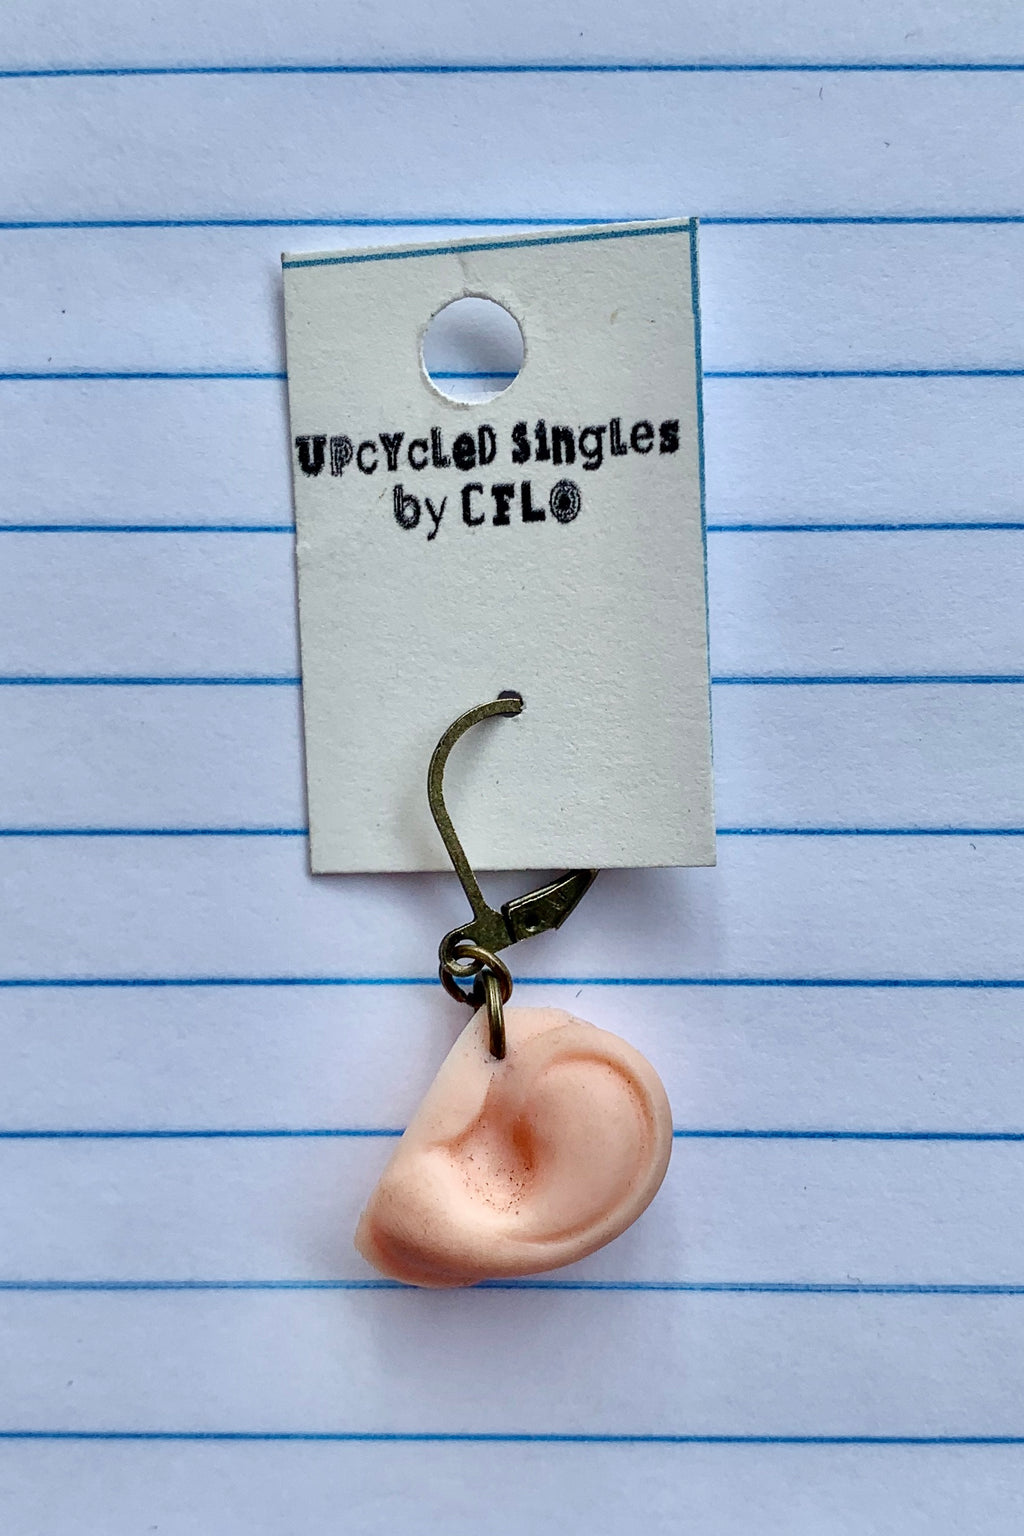 Upcycled Singles - Doll Ear! Vintage Charms For Your Ears!